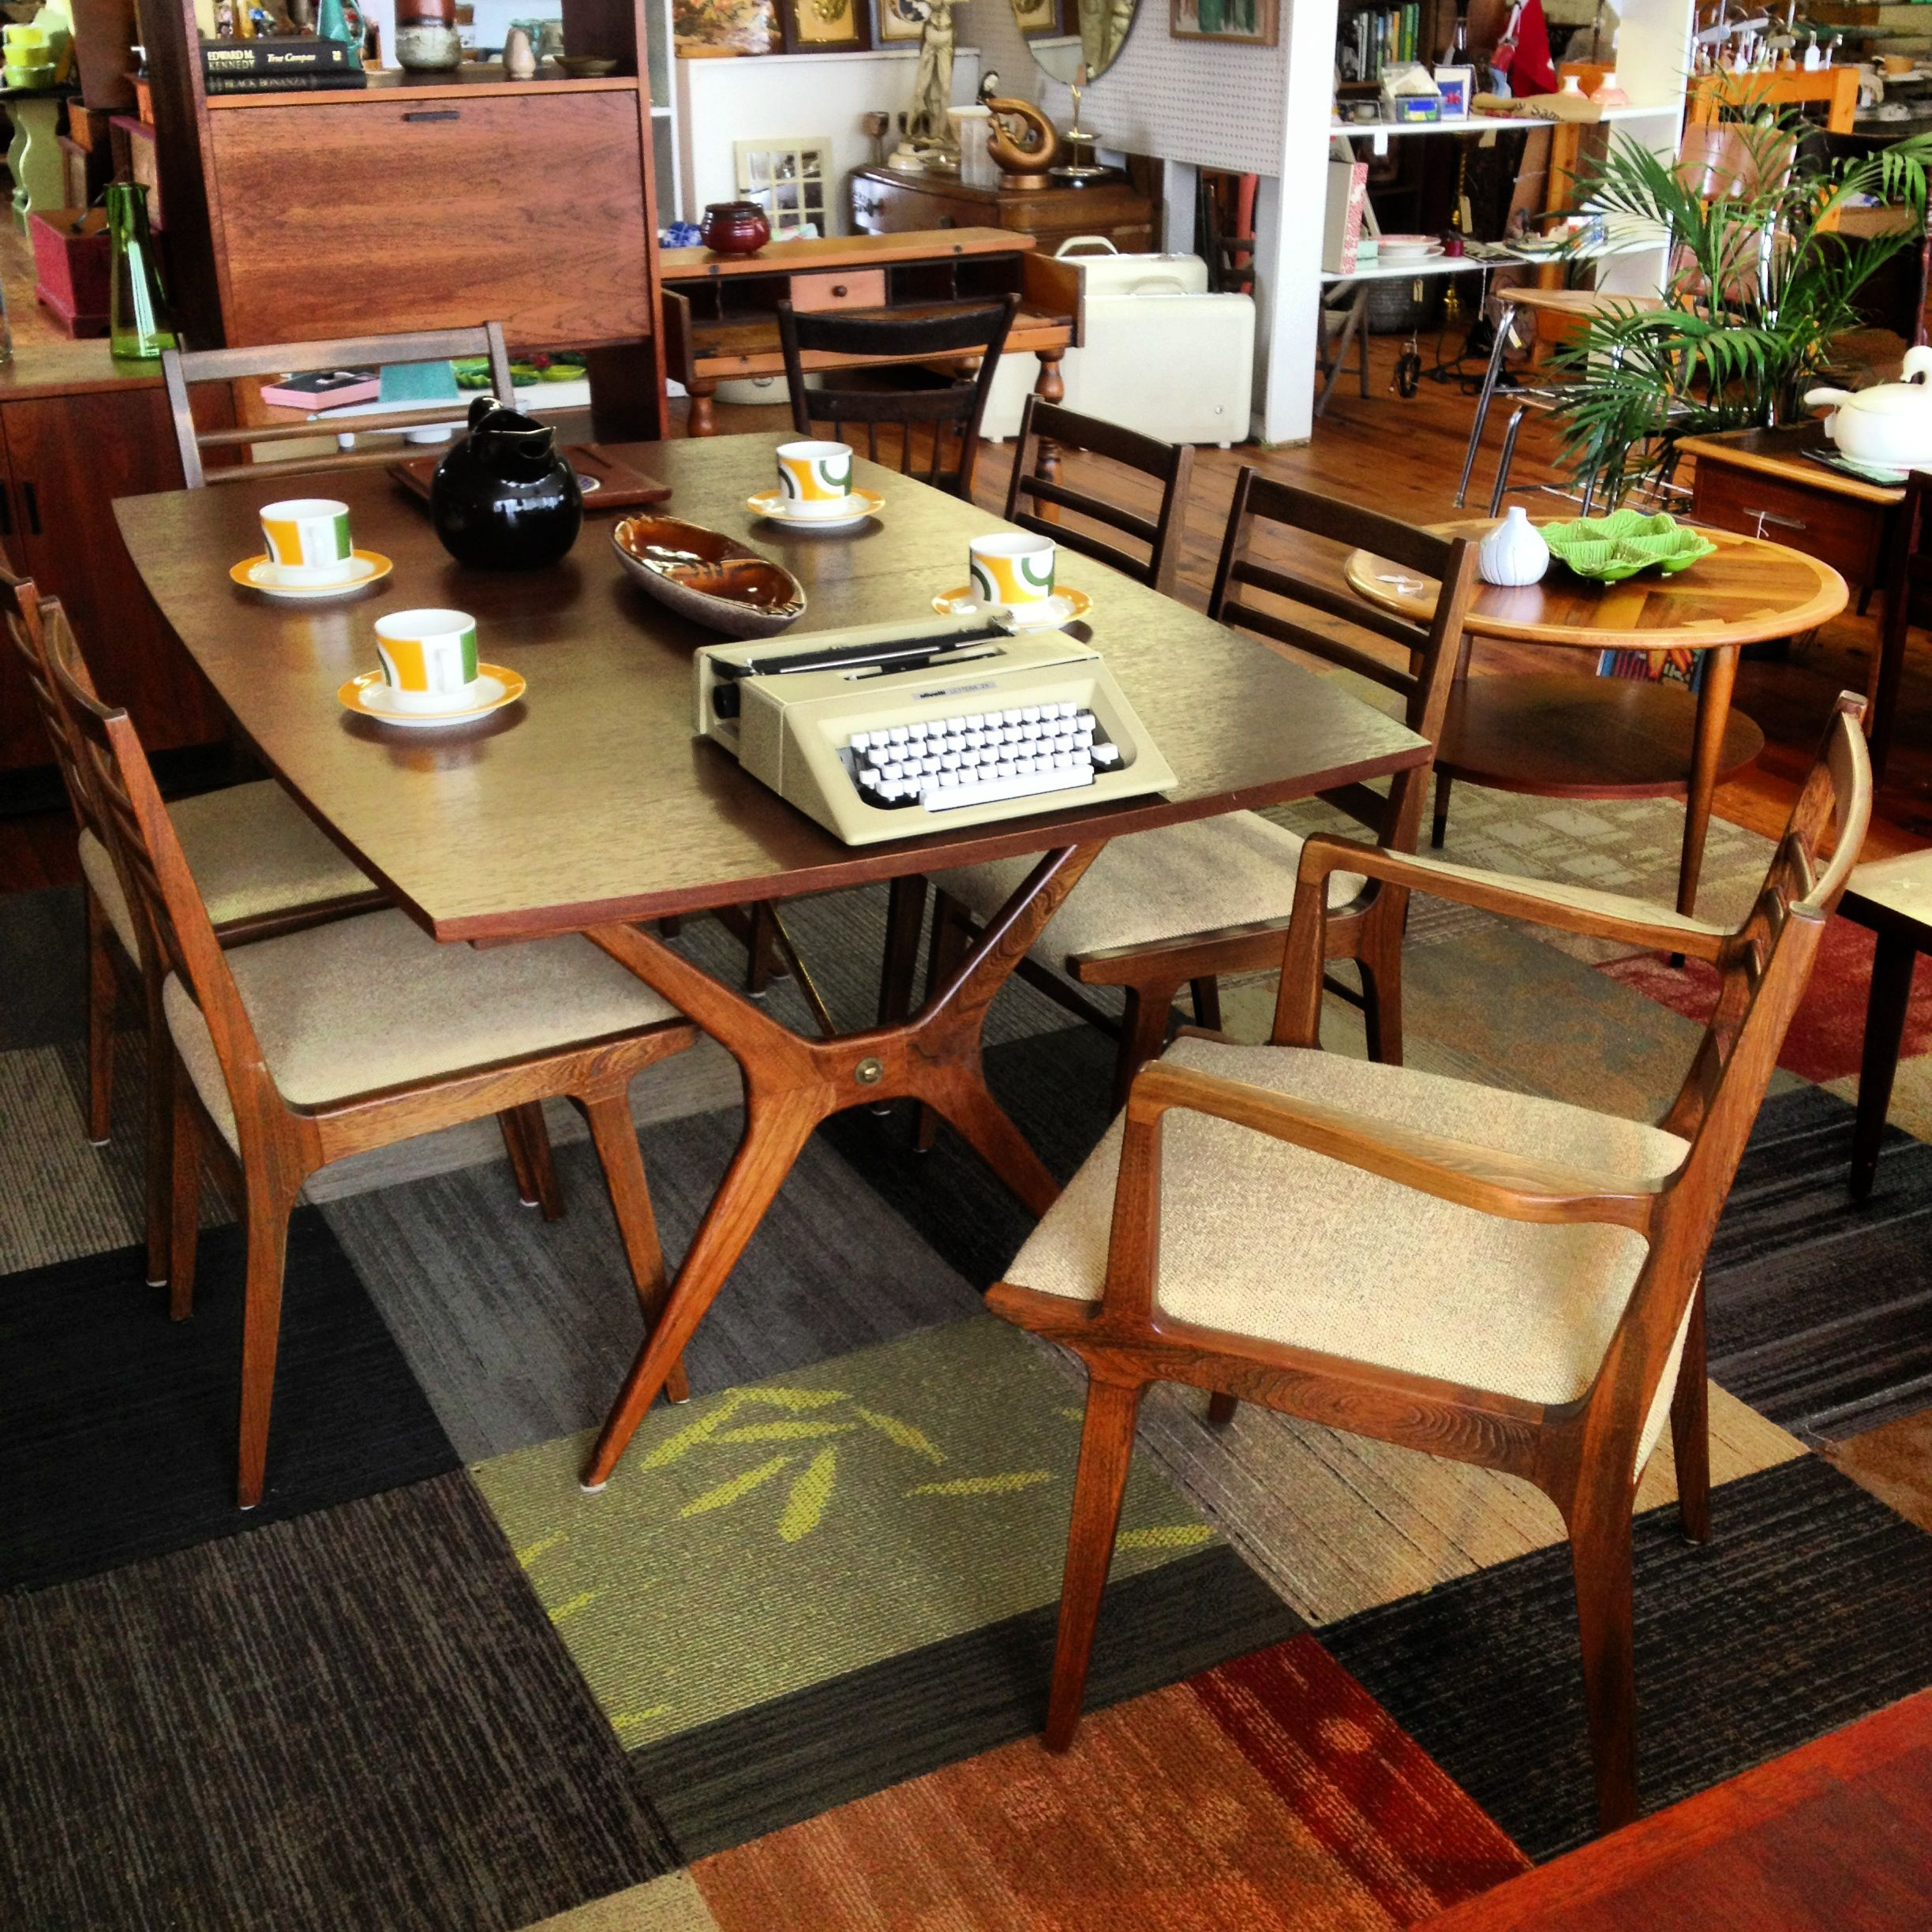 R Way Of Sheboygan Wisconsin Table And Chairs Cool Legs